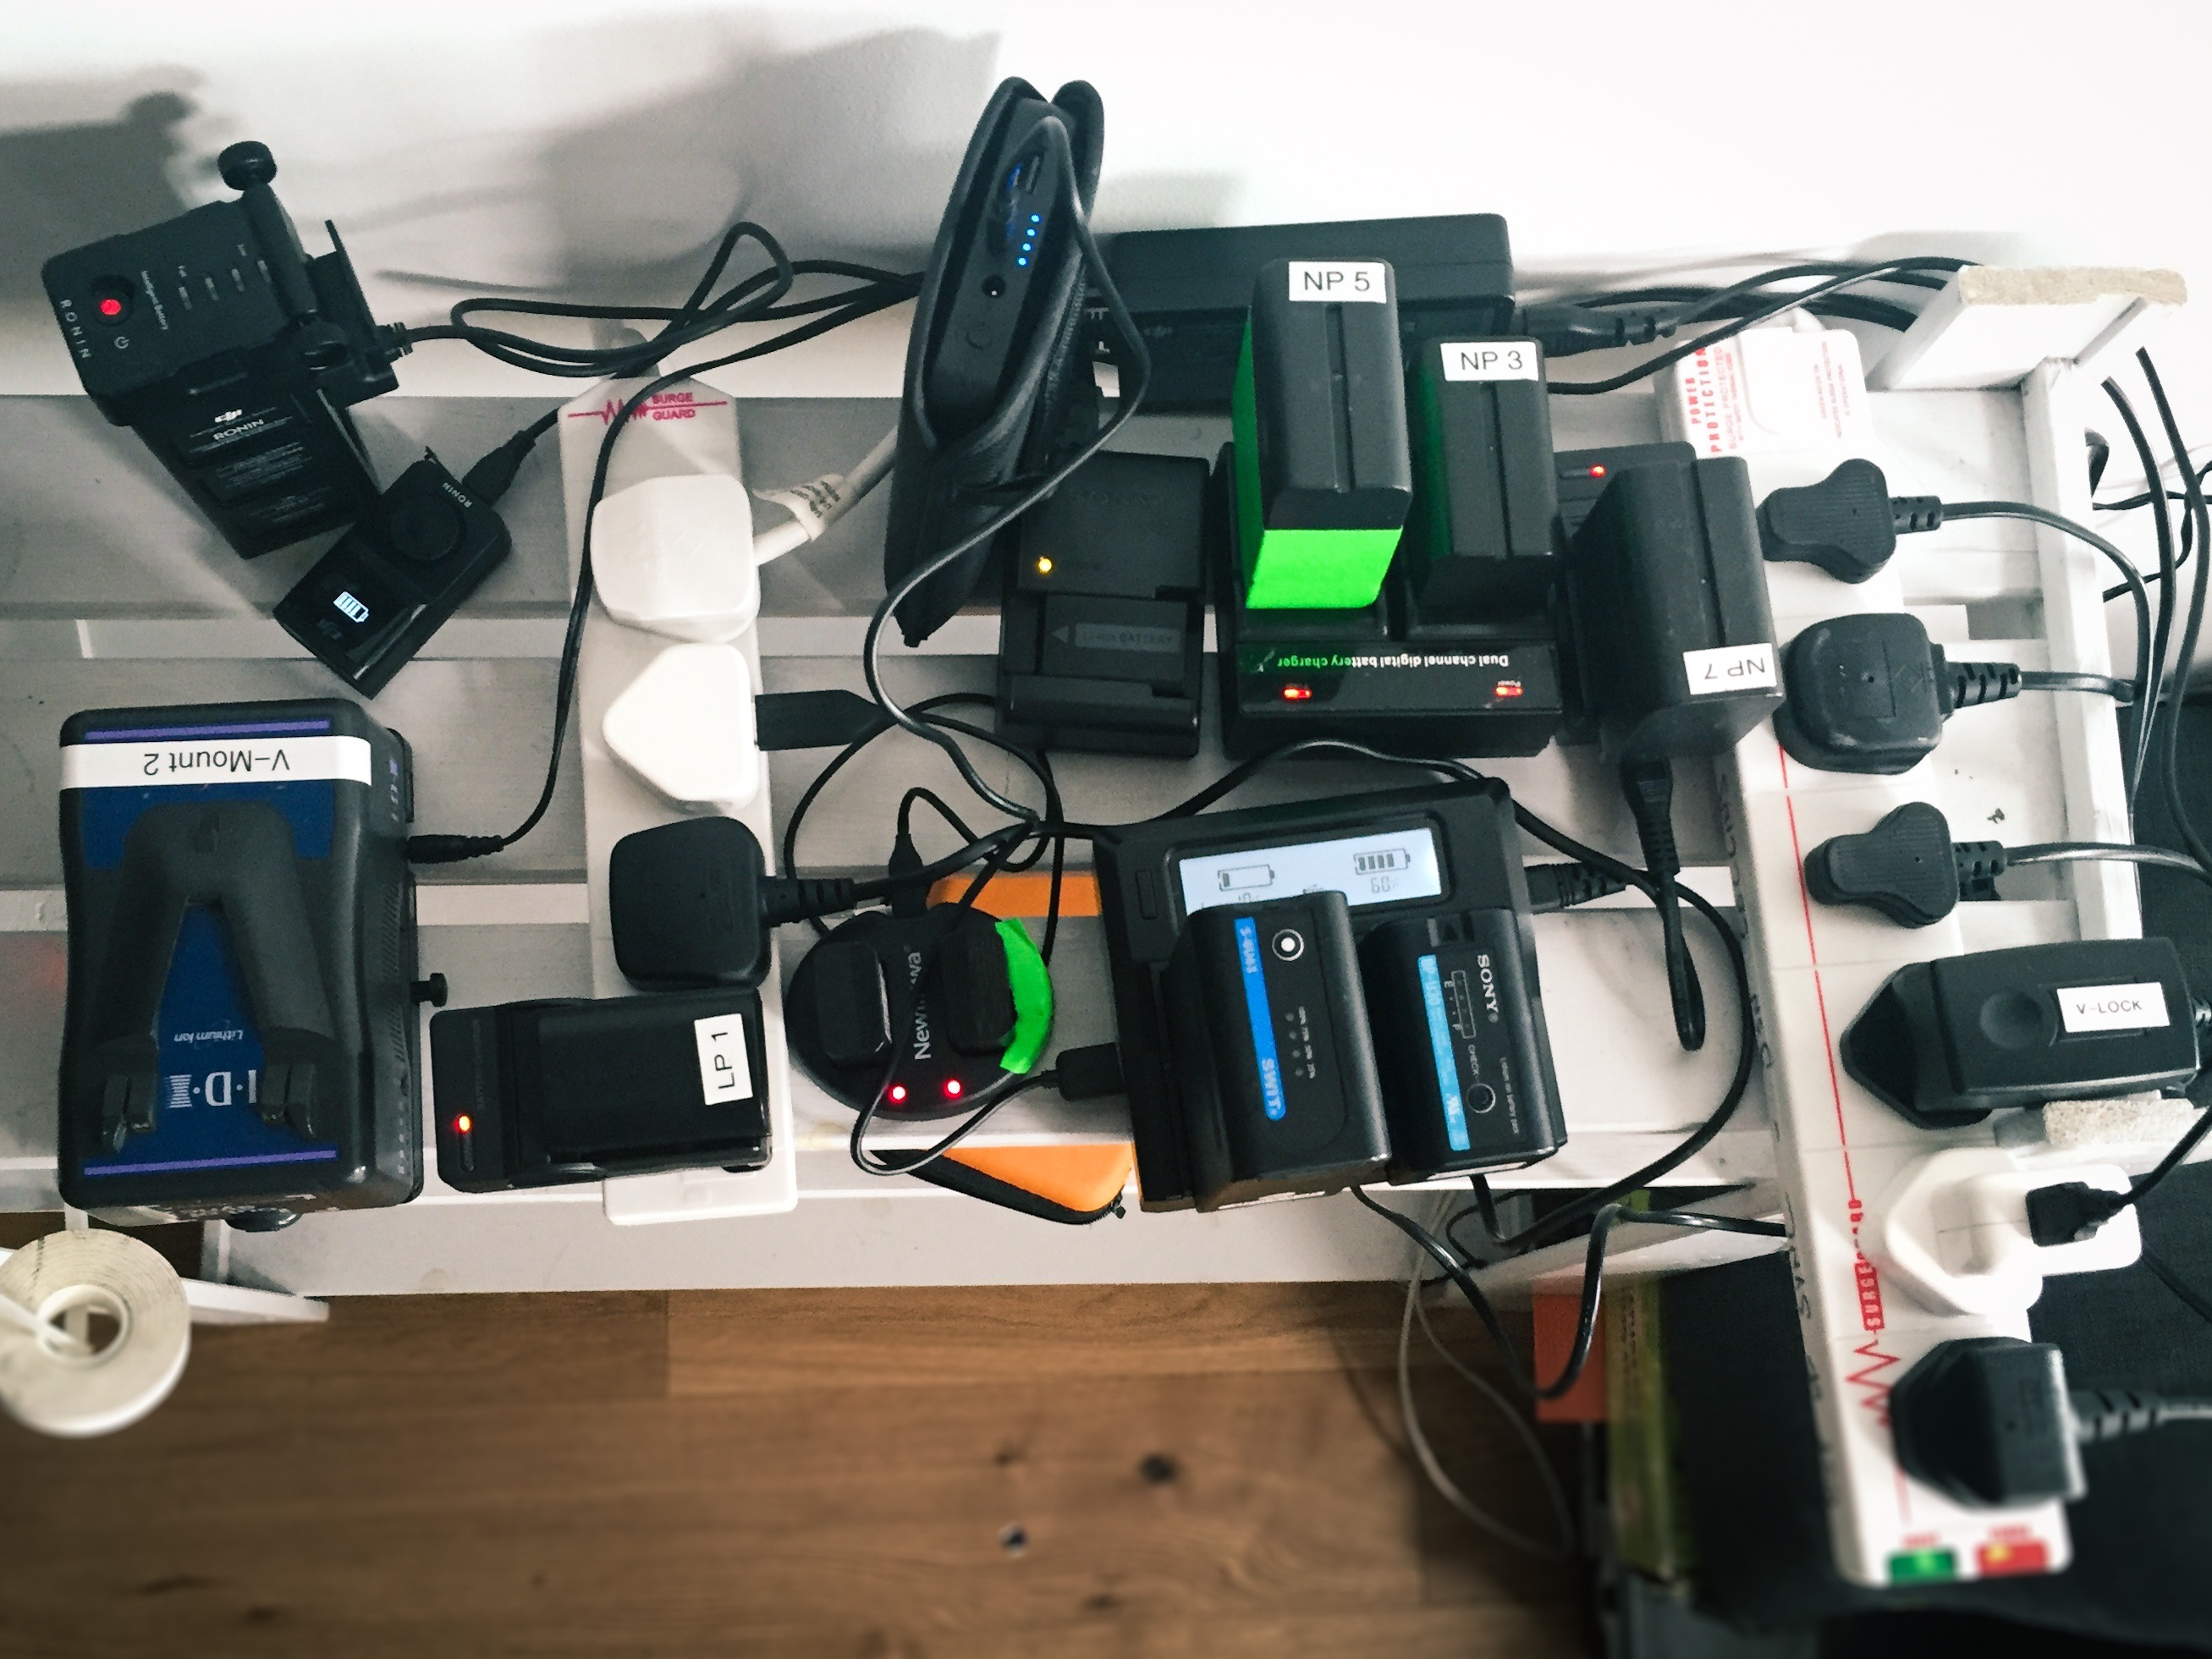 The problem: 8 different battery types